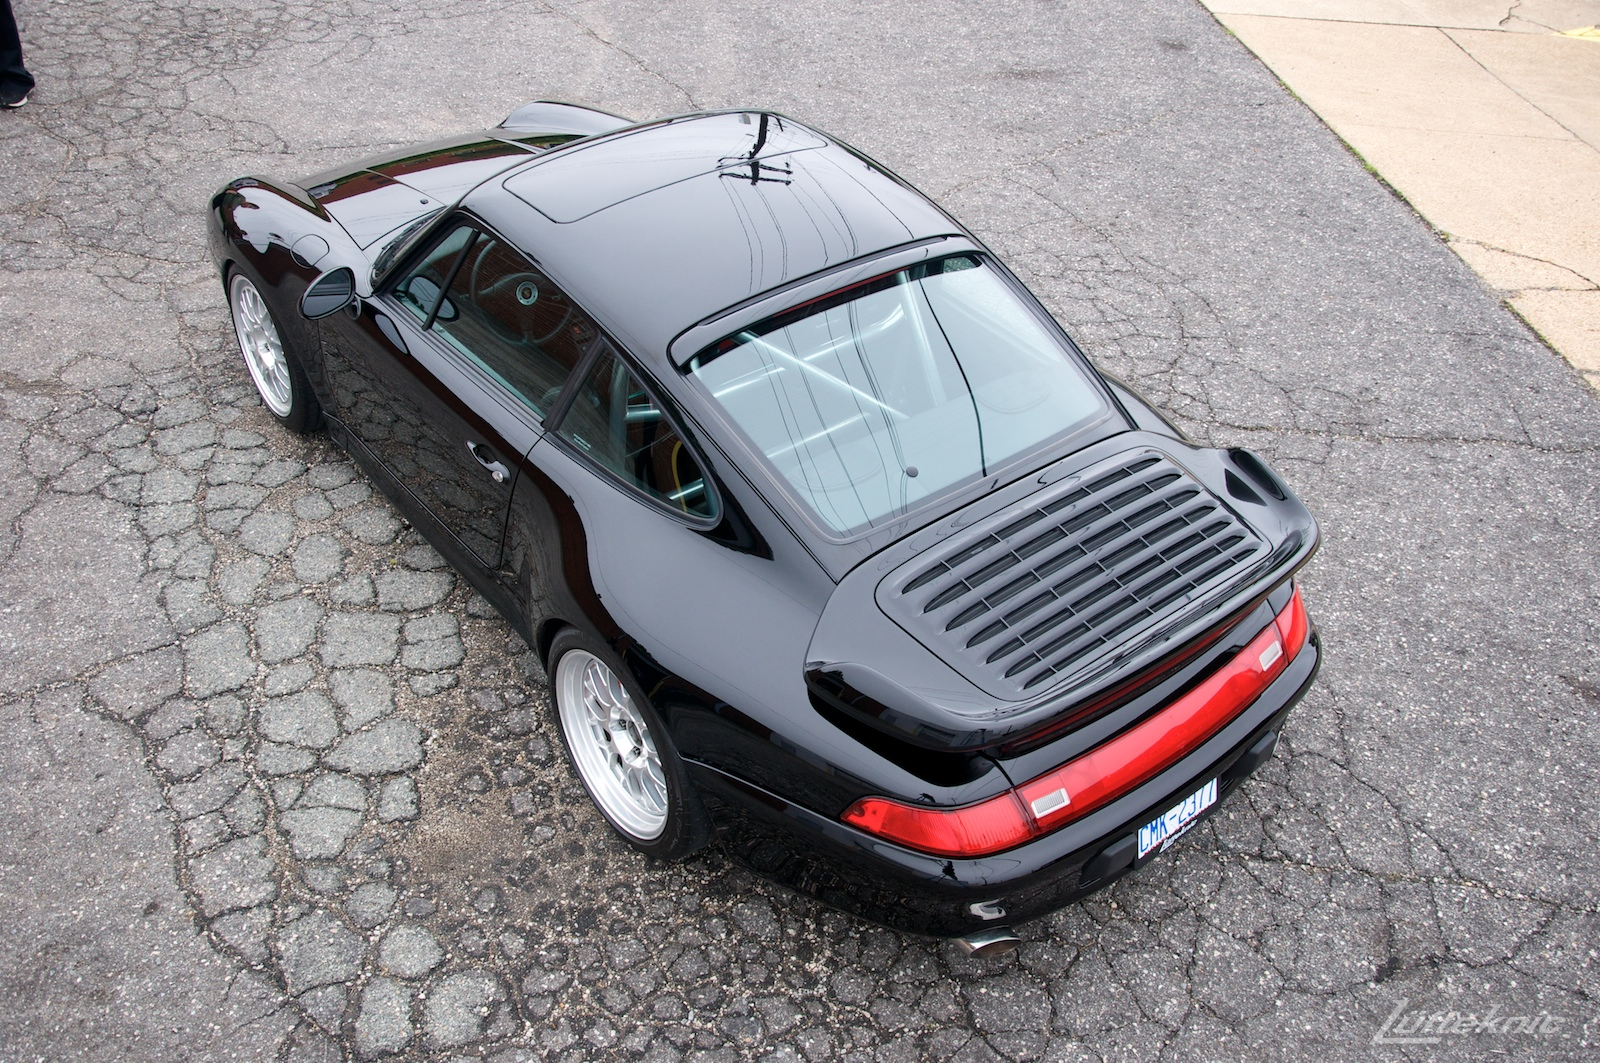 A view from above and behind a shiny black 993 Porsche Turbo in a parking lot.